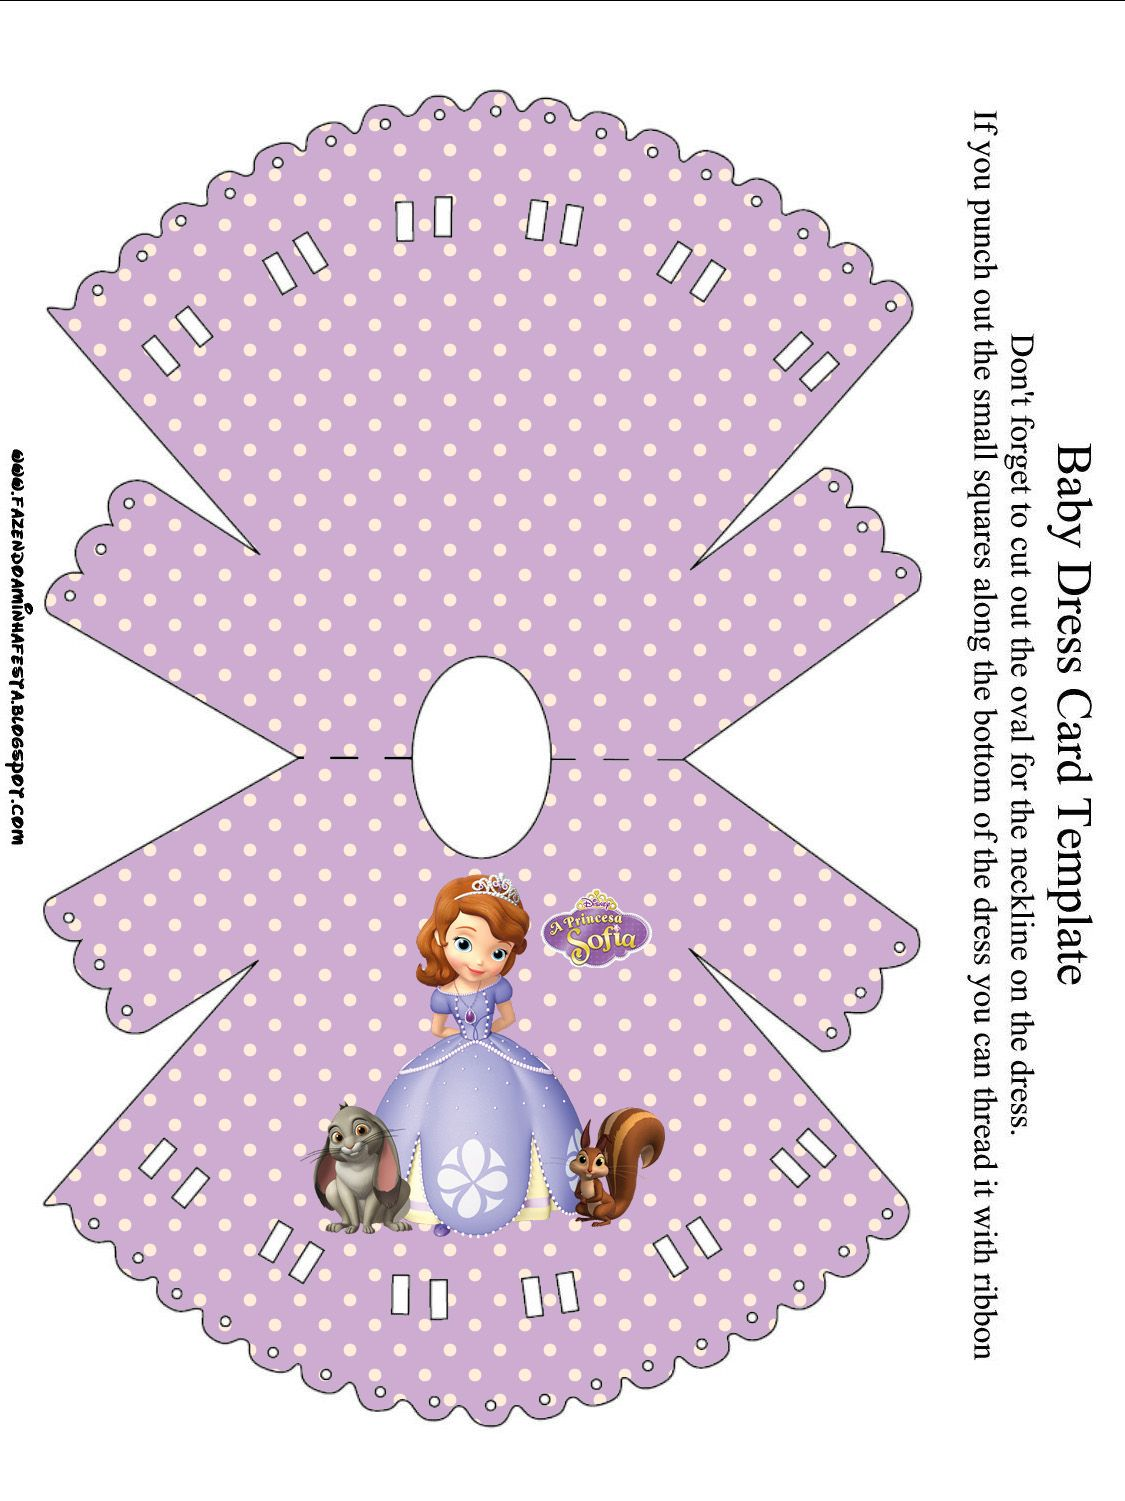 princess sofia the first party invitations free printables oh my fiesta in